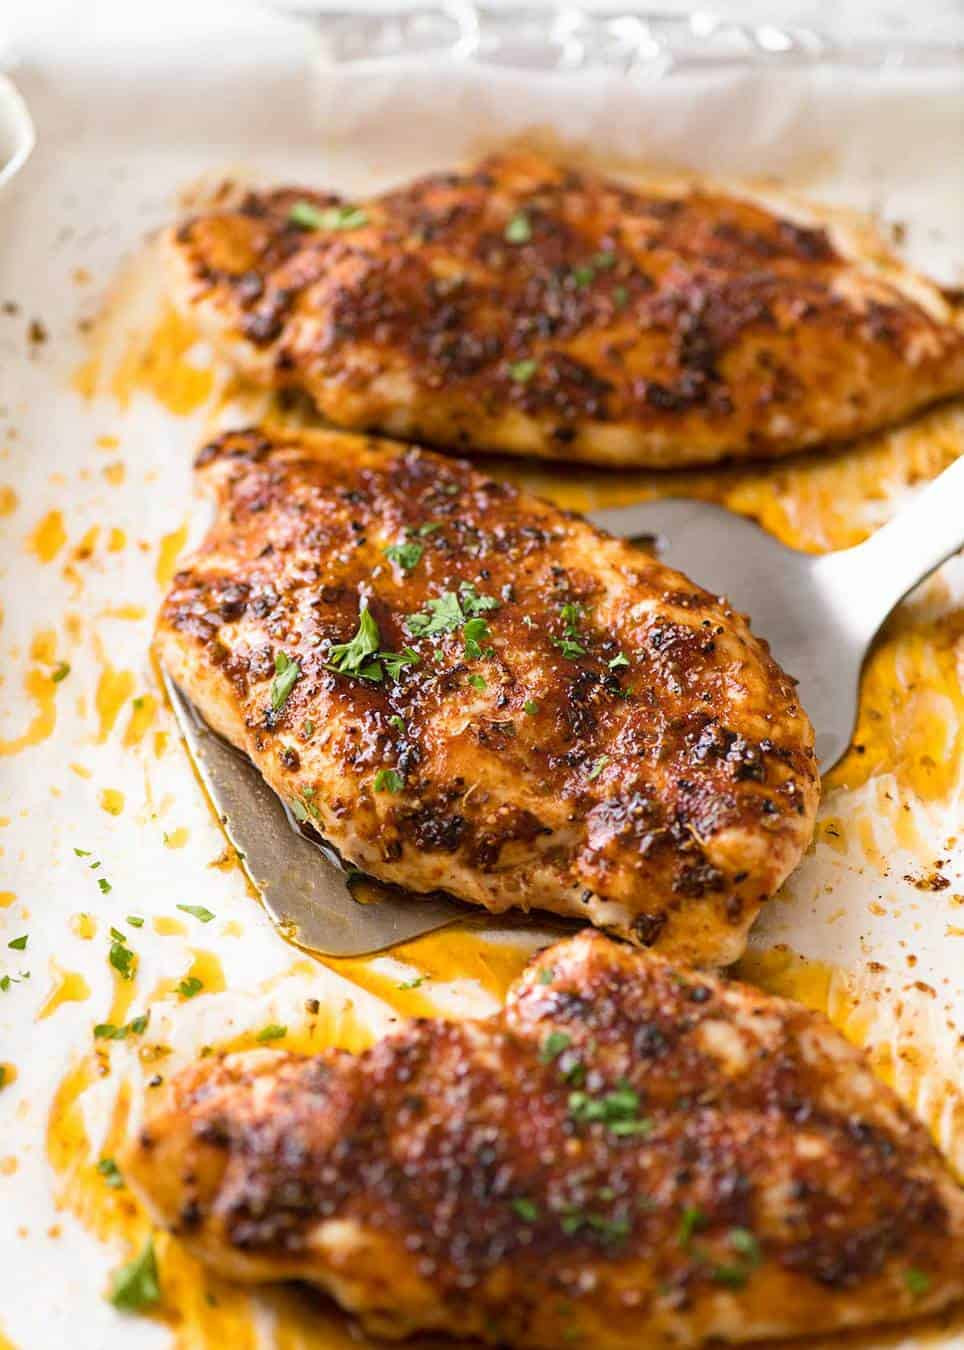 Baked Chicken Breasts Recipes  Oven Baked Chicken Breast